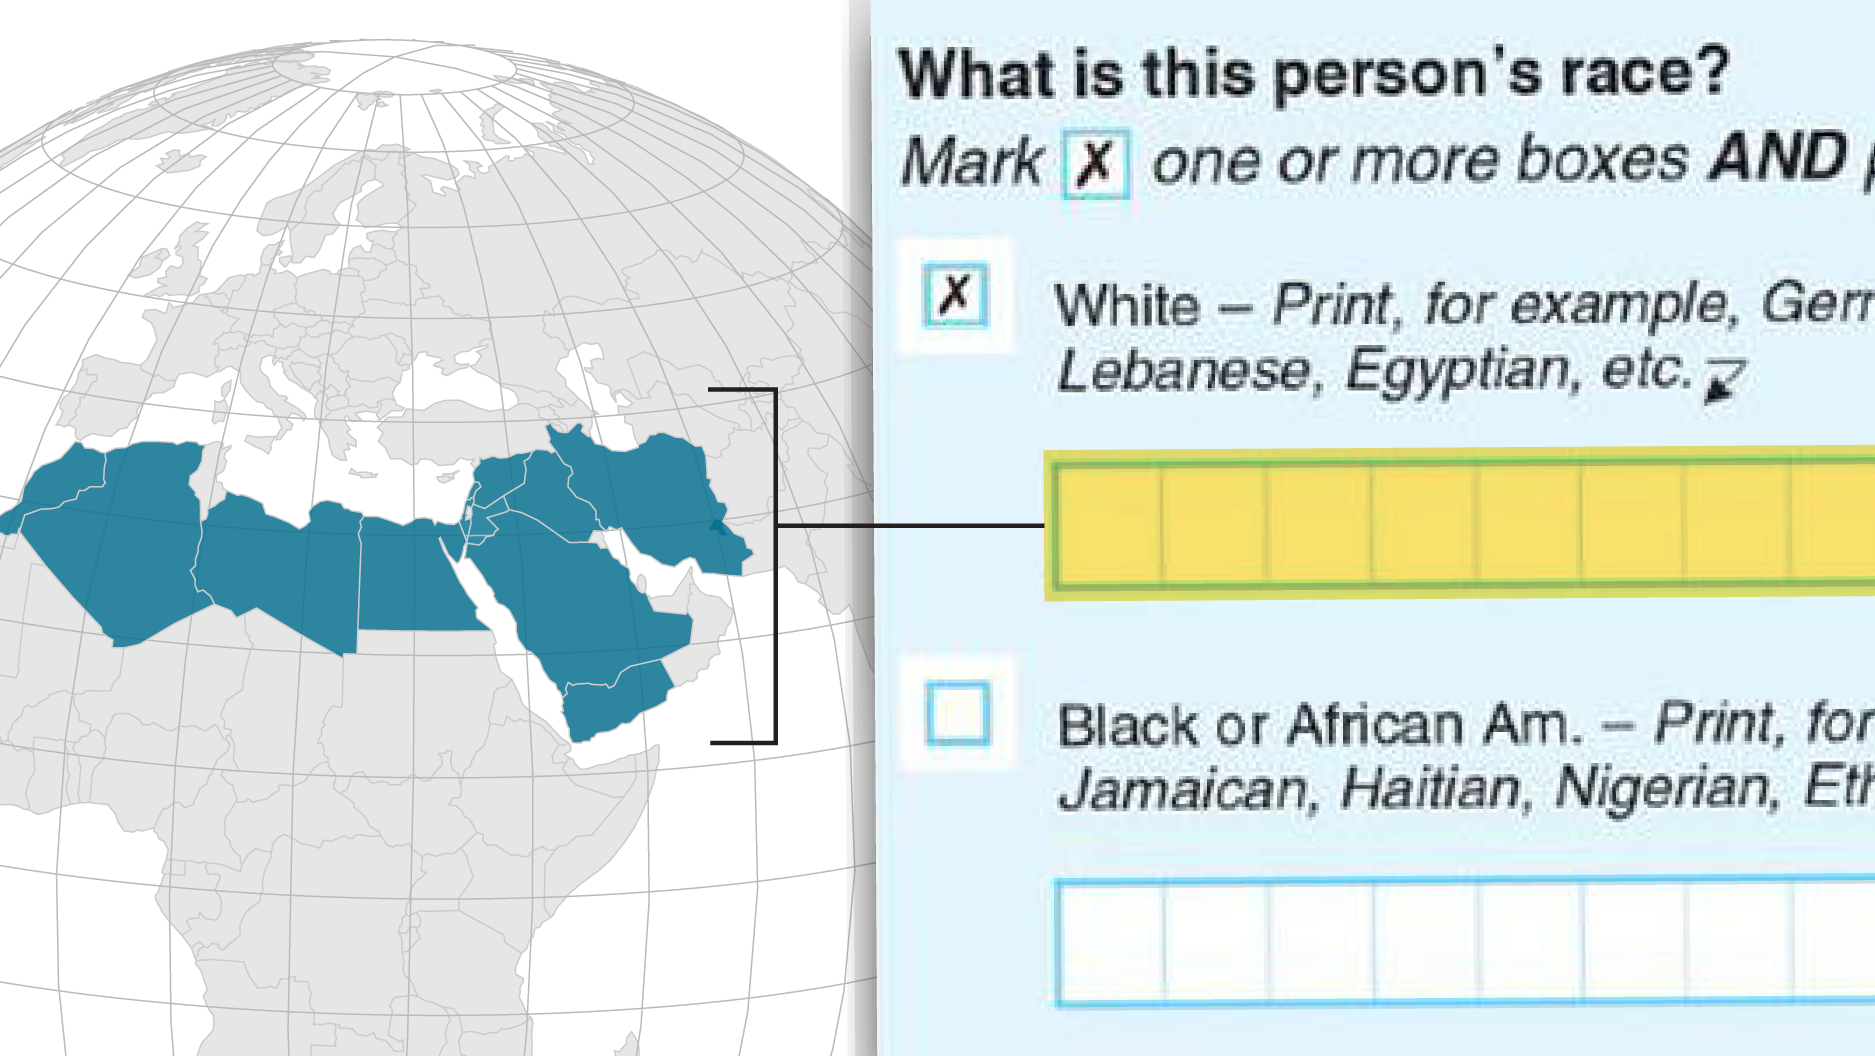 Are Arabs and Iranians white? Census says yes, but many